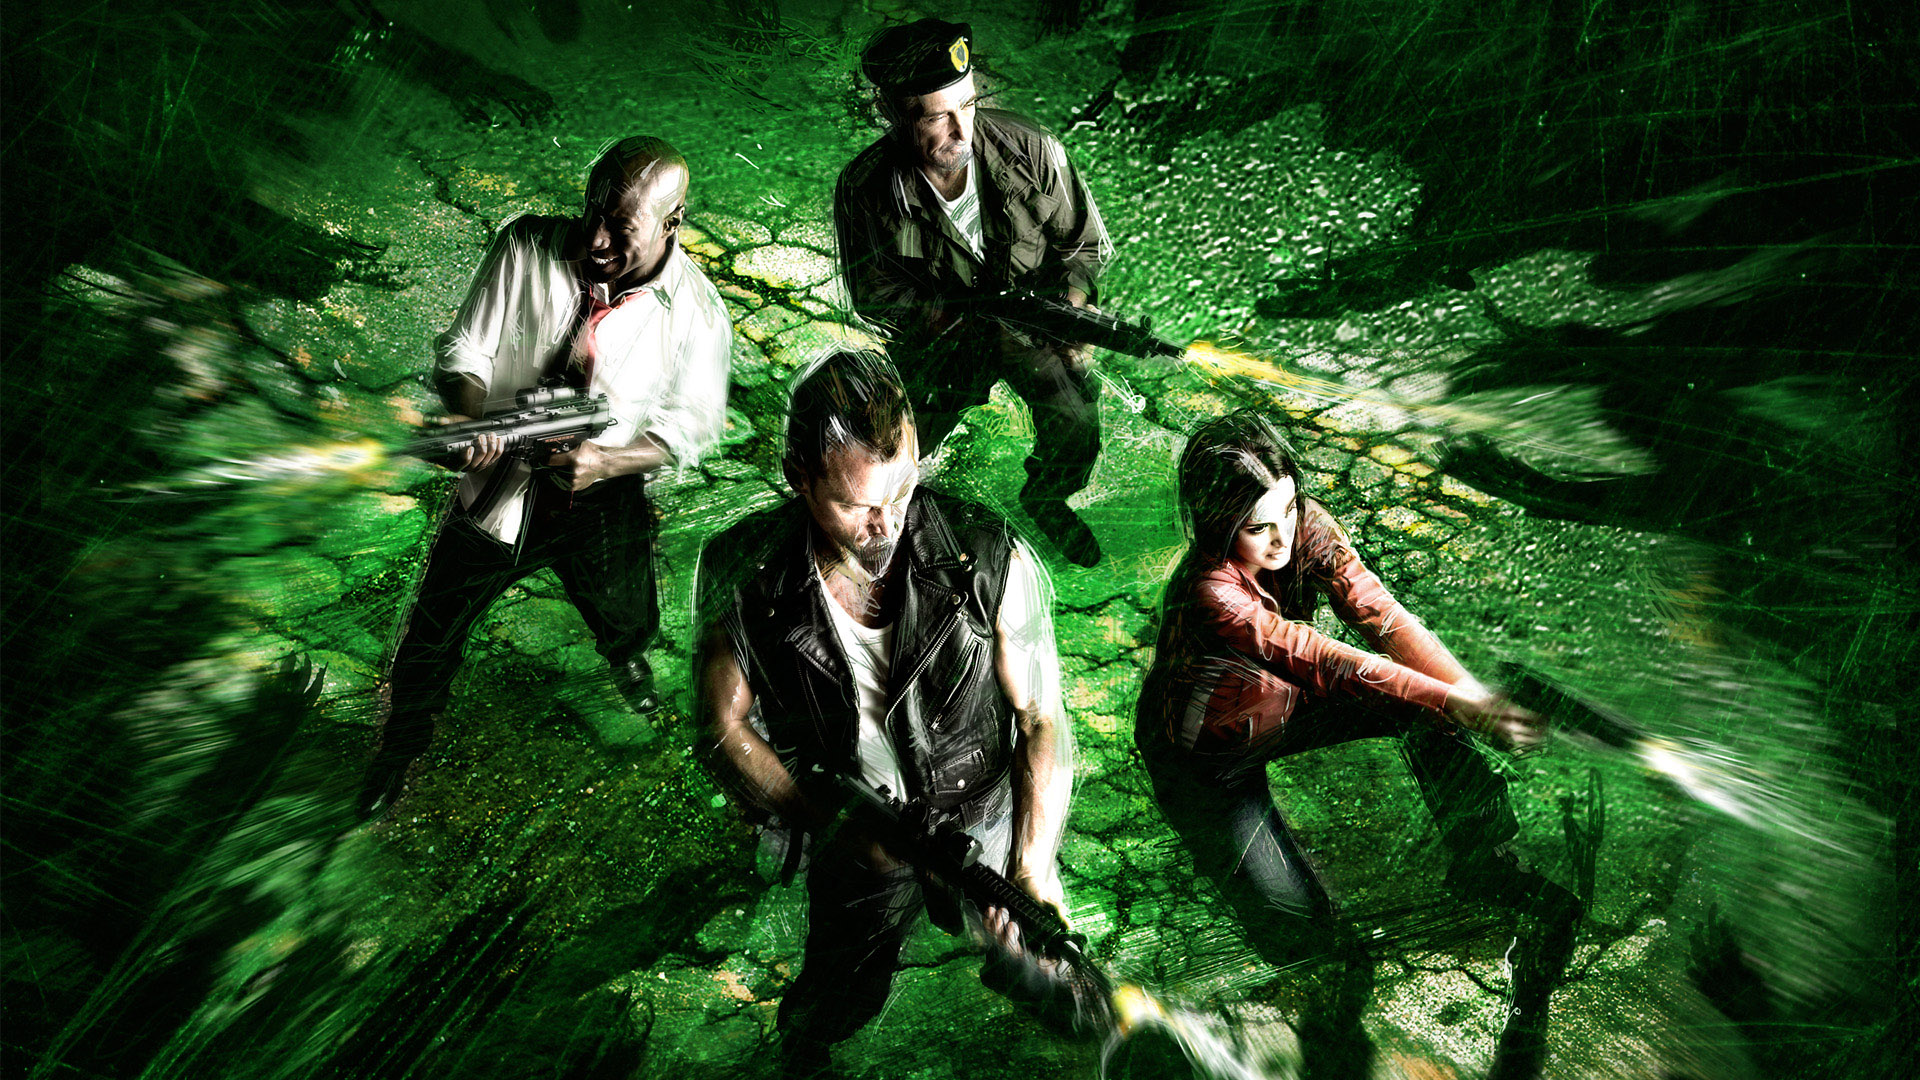 Left  Dead  Wallpapers, Images, Wallpapers of Left  Dead  in 1920x1080